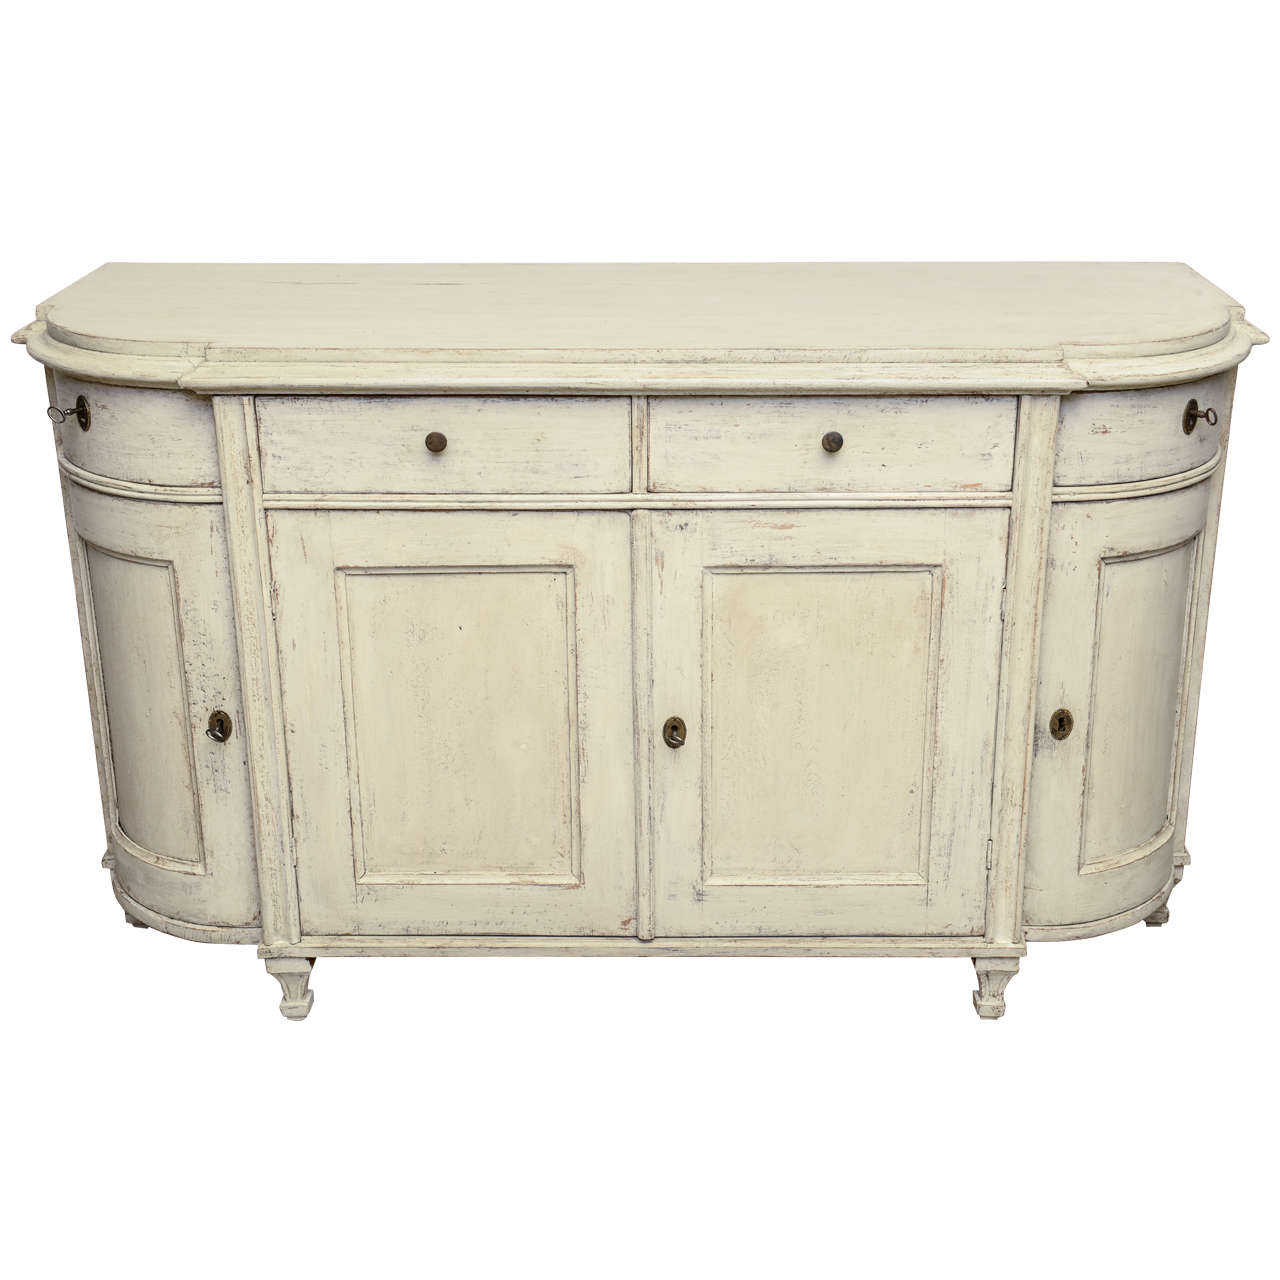 Sideboard Beige antique painted late gustavian sideboard with rounded